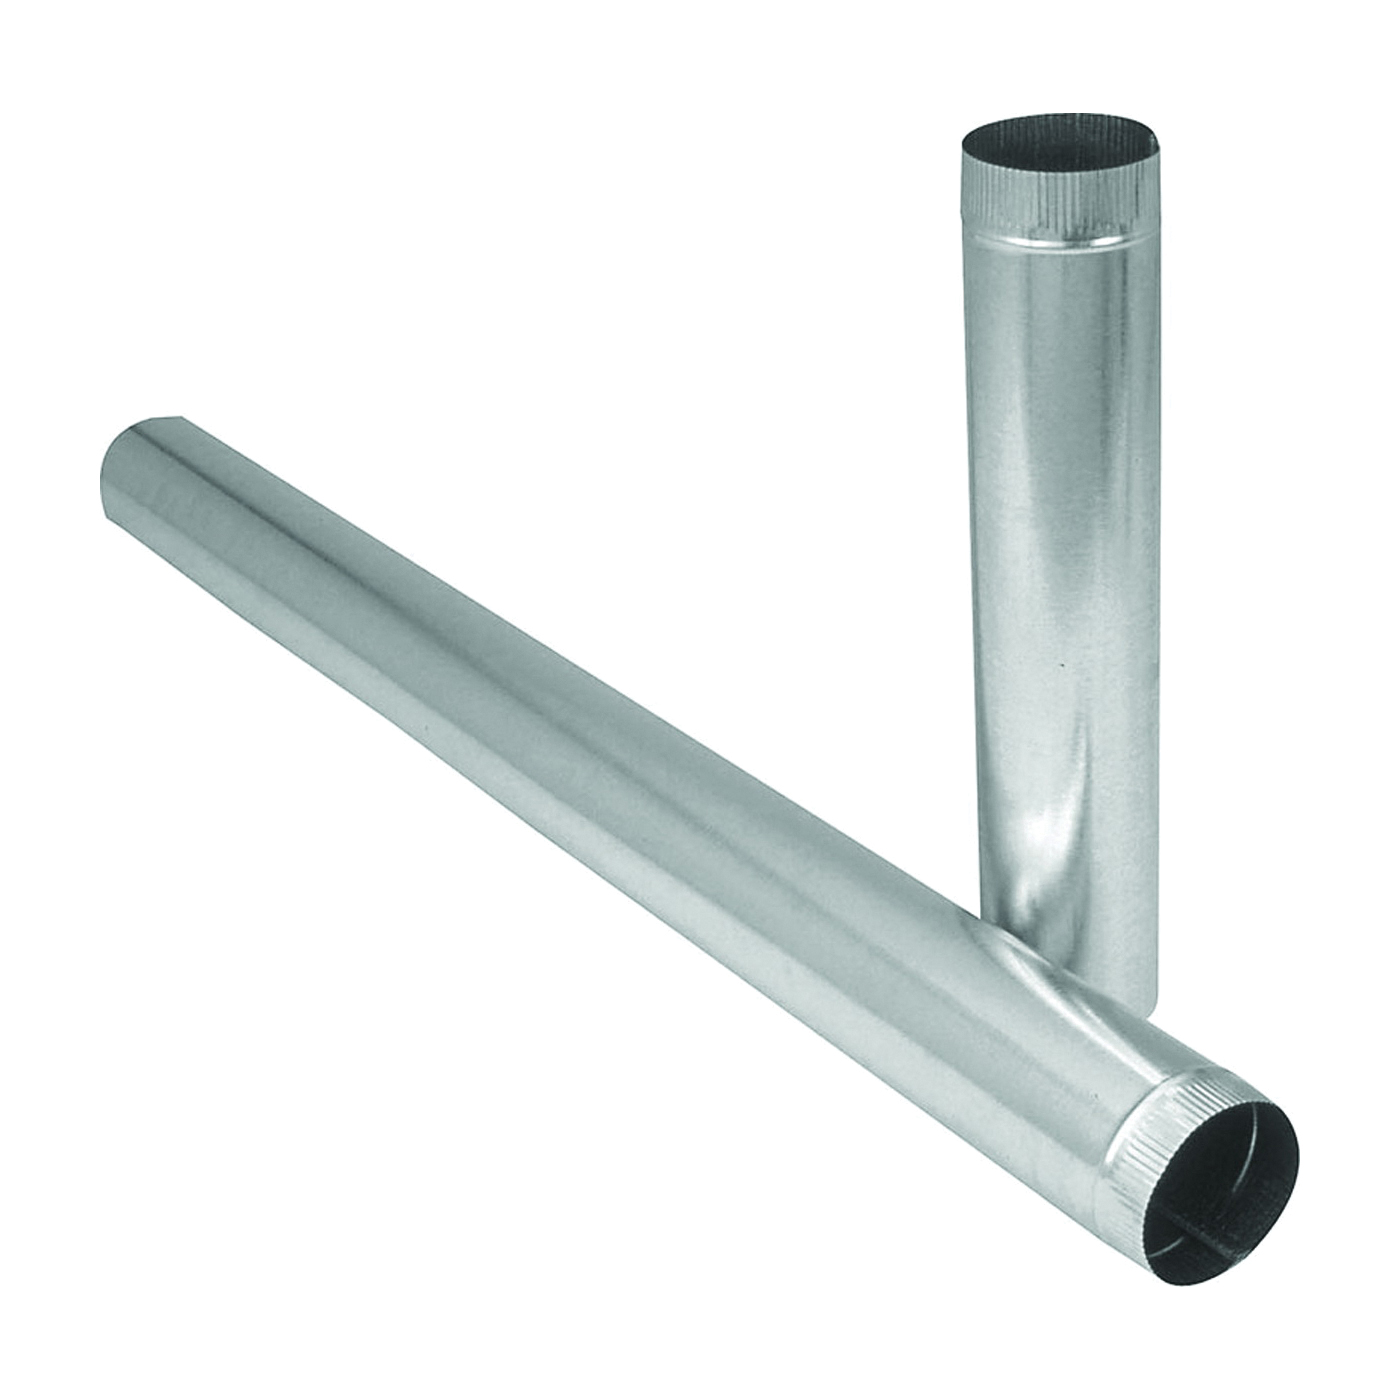 Picture of Imperial GV0372-A Round Pipe, 5 in Dia, 30 in L, 30 Gauge, Steel